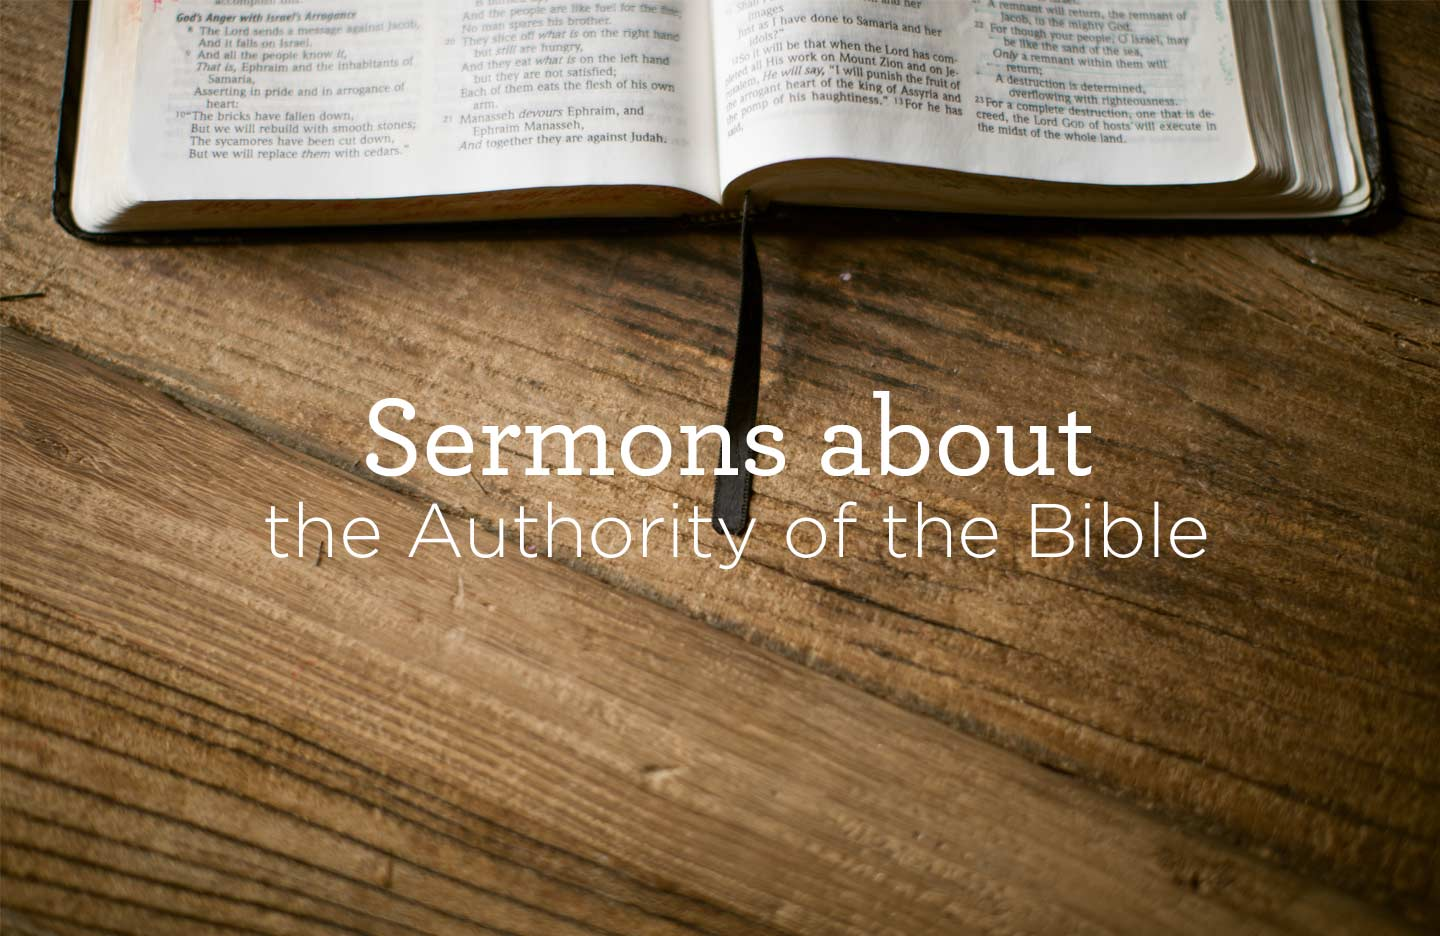 thumbnail image for Sermons about the Authority of the Bible